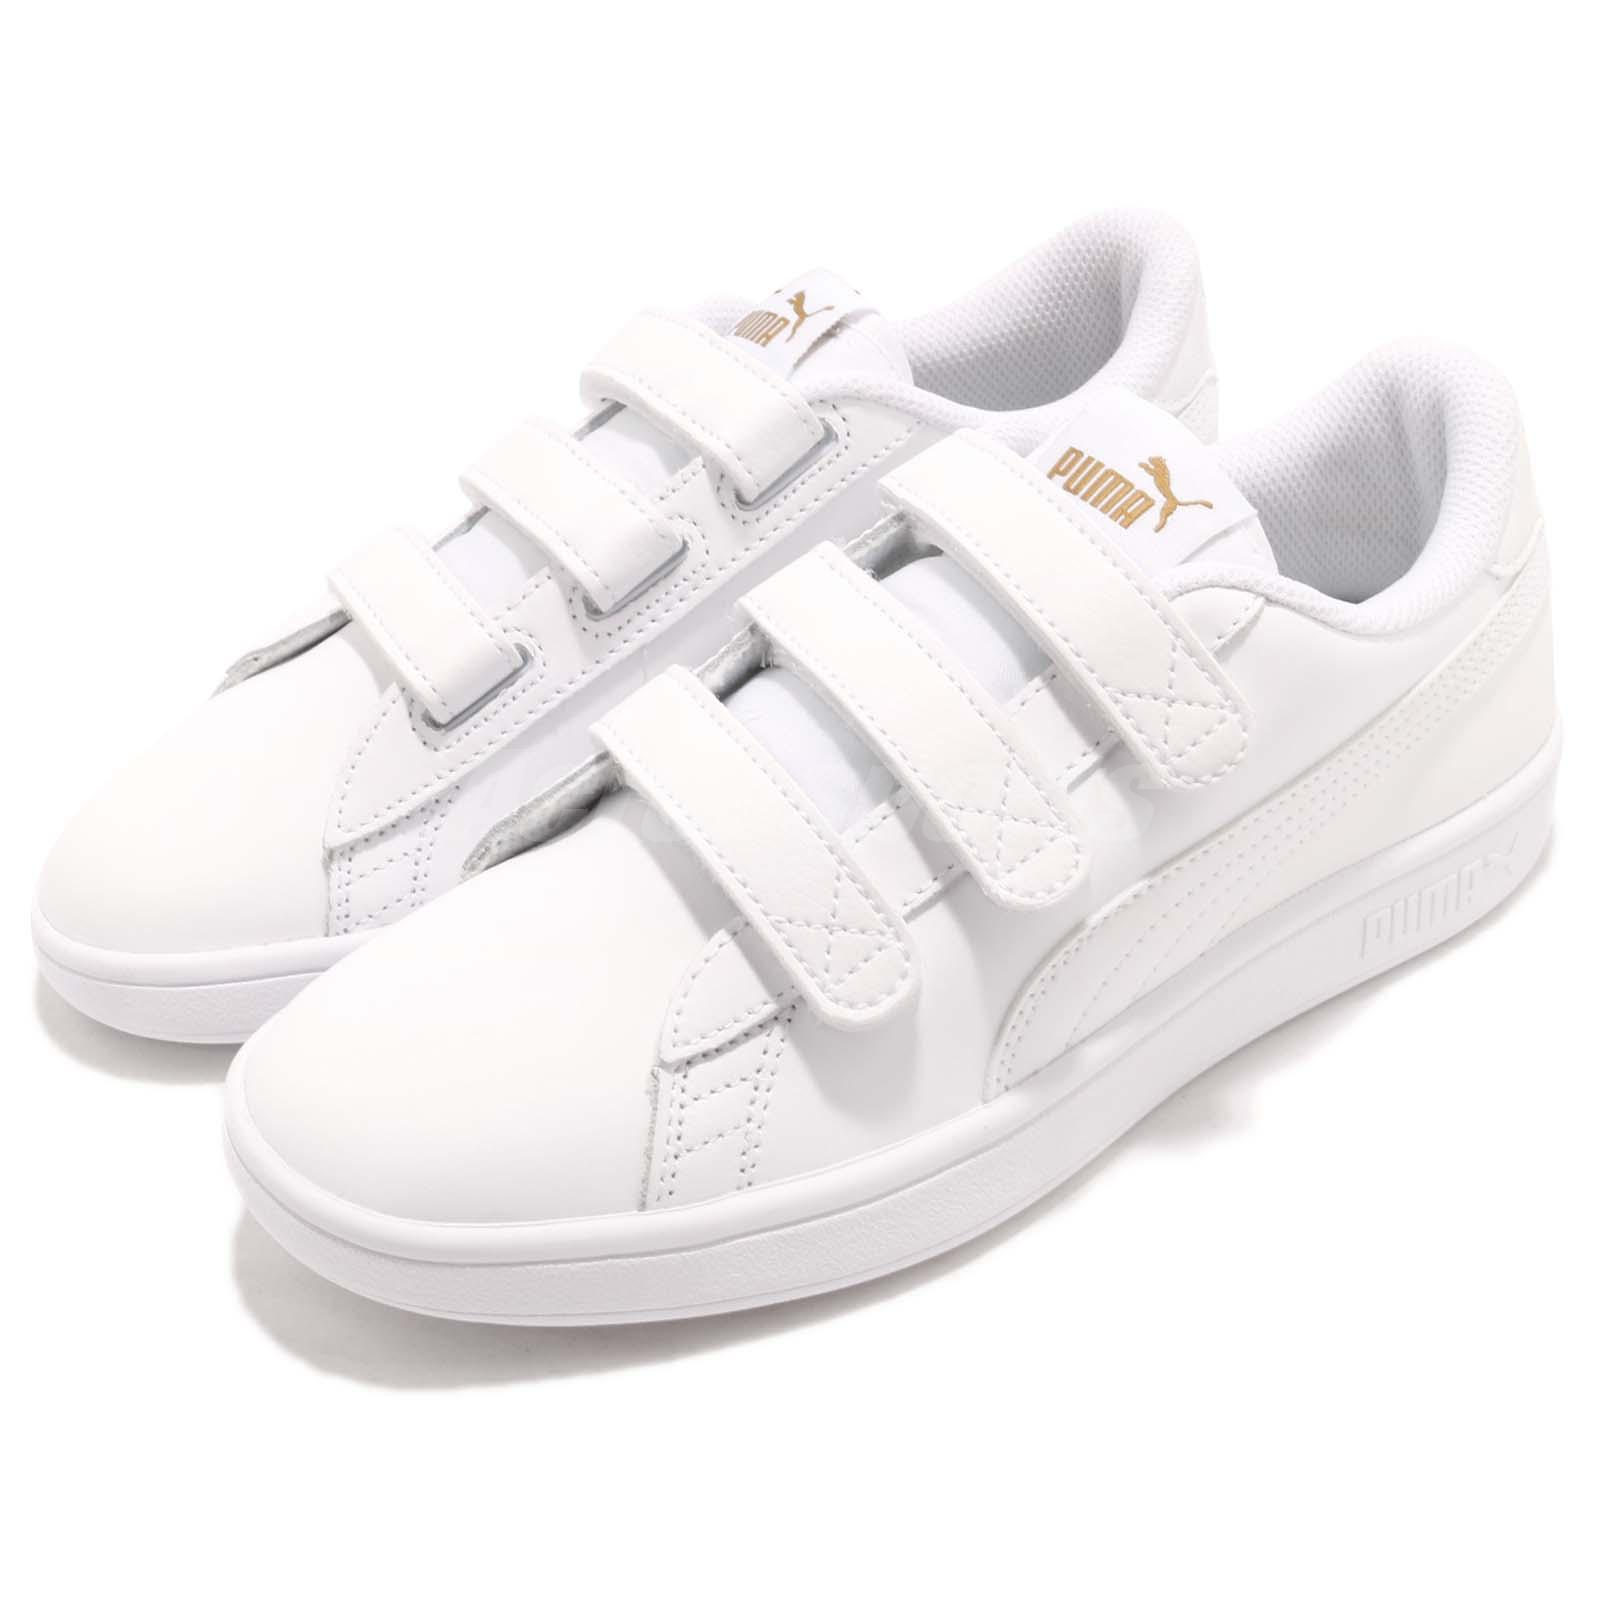 Details about Puma Smash V2 V Strap White Gold Men Casual Walking Shoes  Sneakers 366910-03 7ca9b4a73